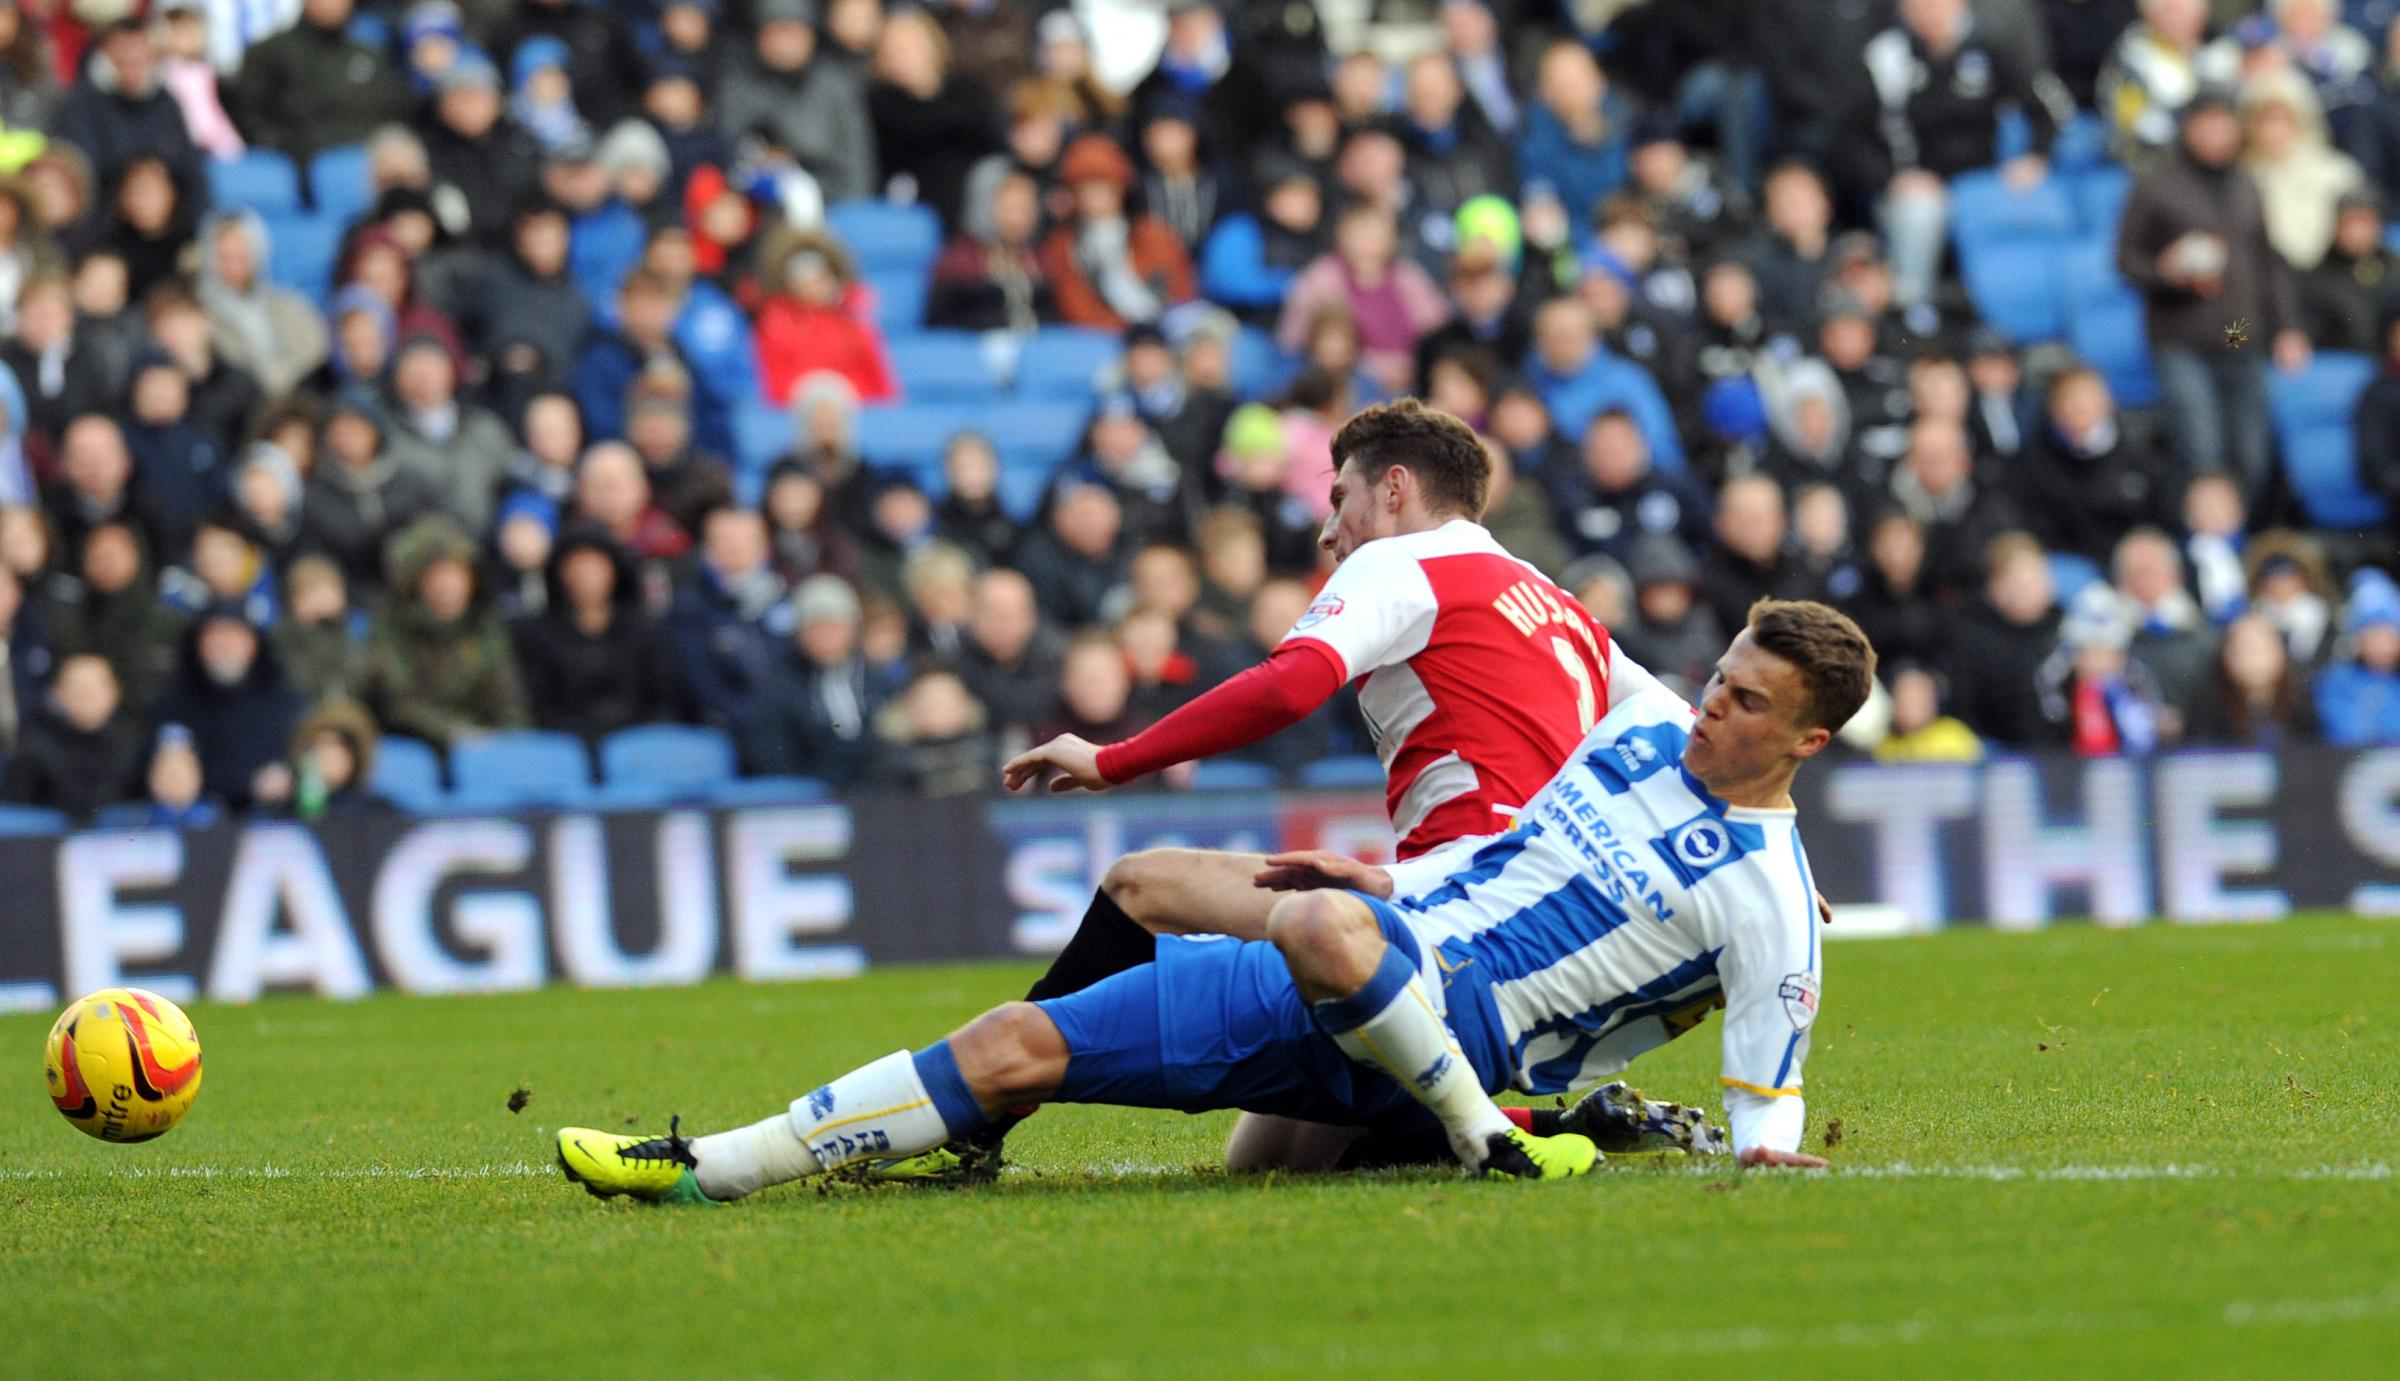 Solly March in action for Albion at the Amex today. Picture by Simon Dack